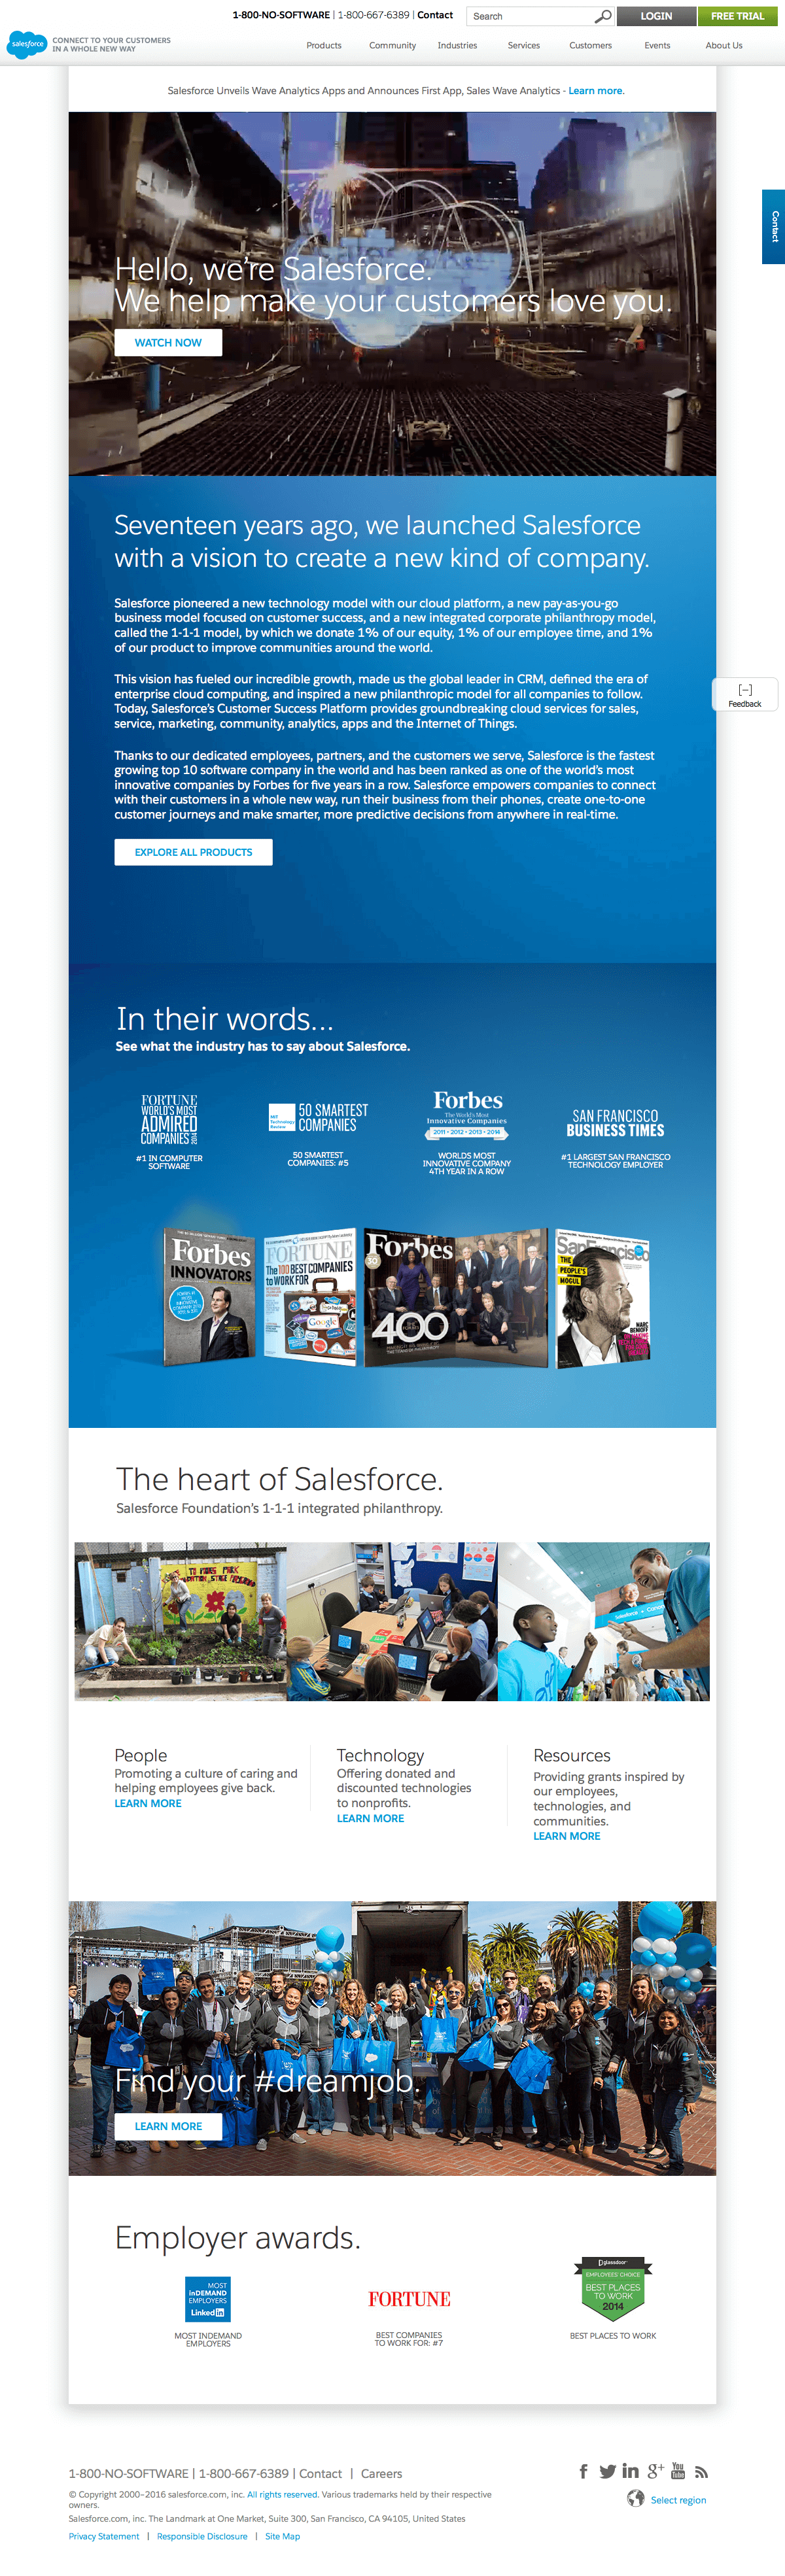 About us page inspiration - Salesforce